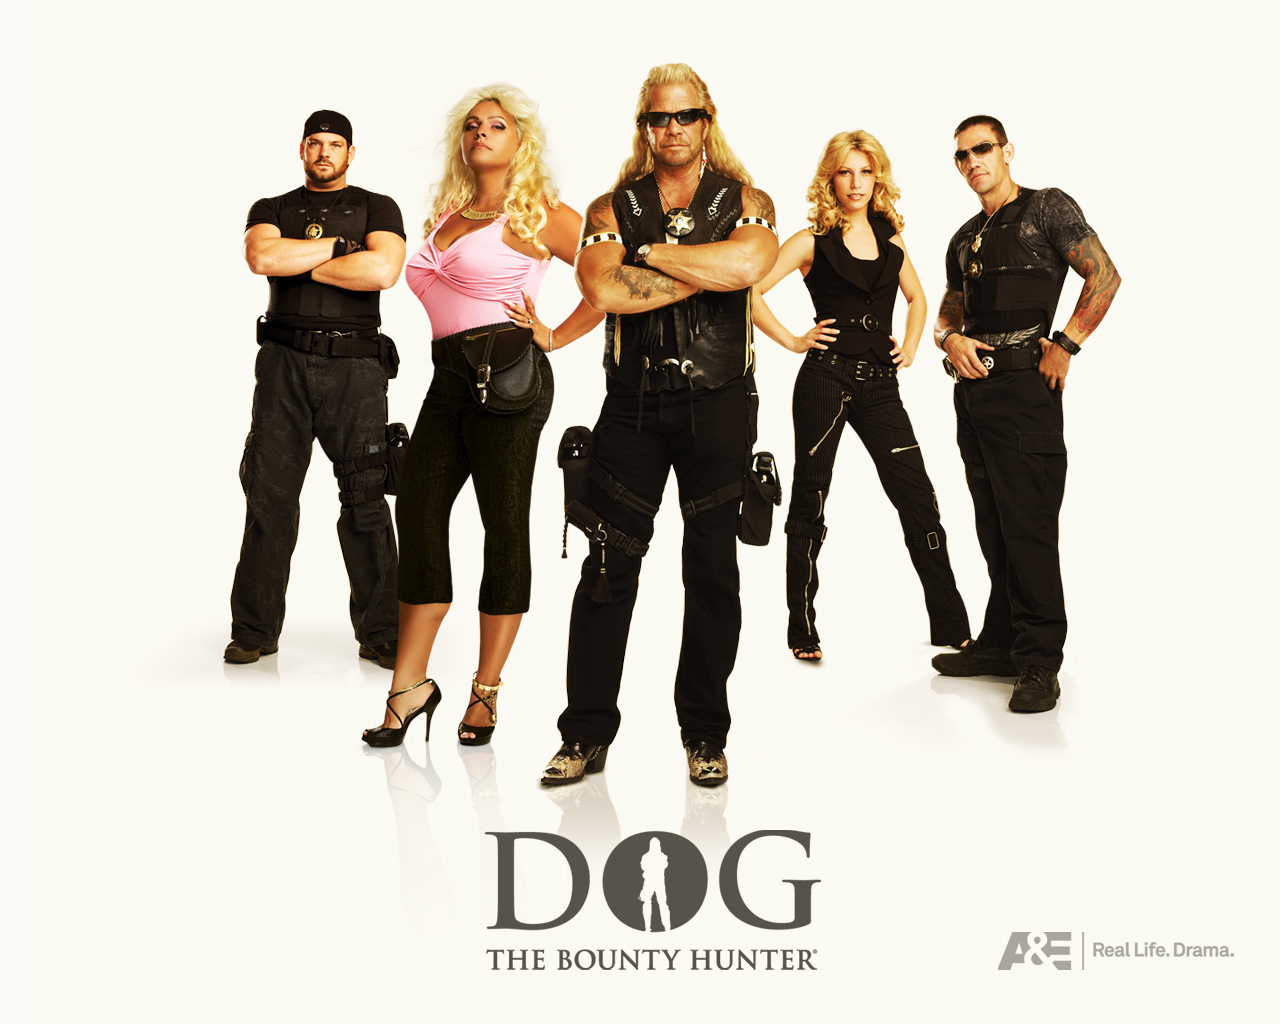 1399128-dog_the_bounty_hunter_dog_the_bounty_hunter_1852504_1280_1024